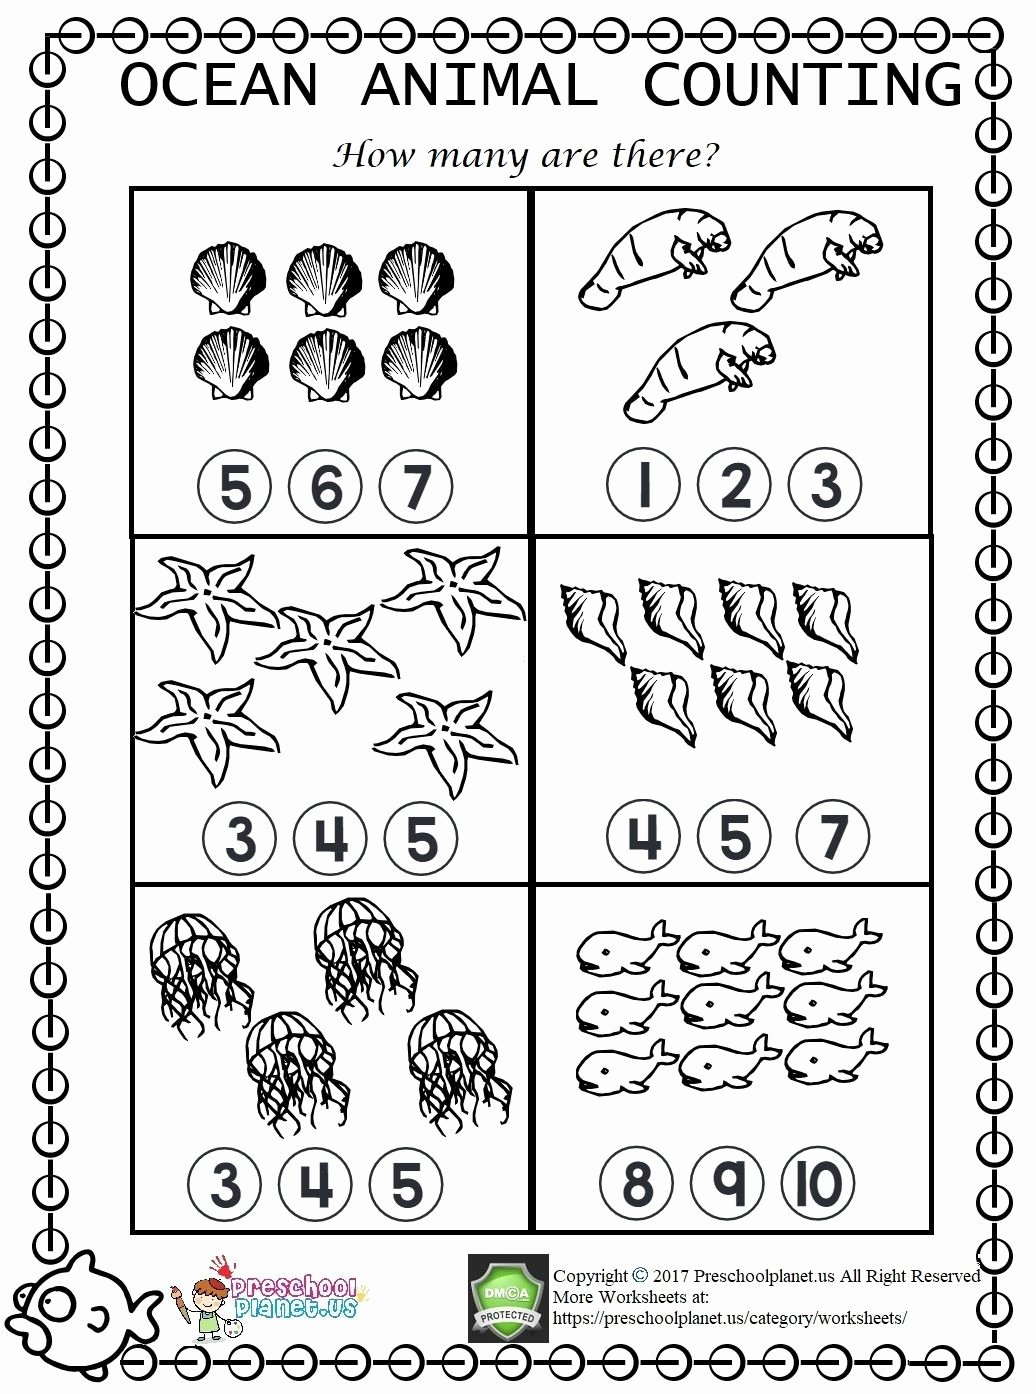 Sea Creatures Worksheets for Preschoolers Lovely Pin On Preschool Ideas